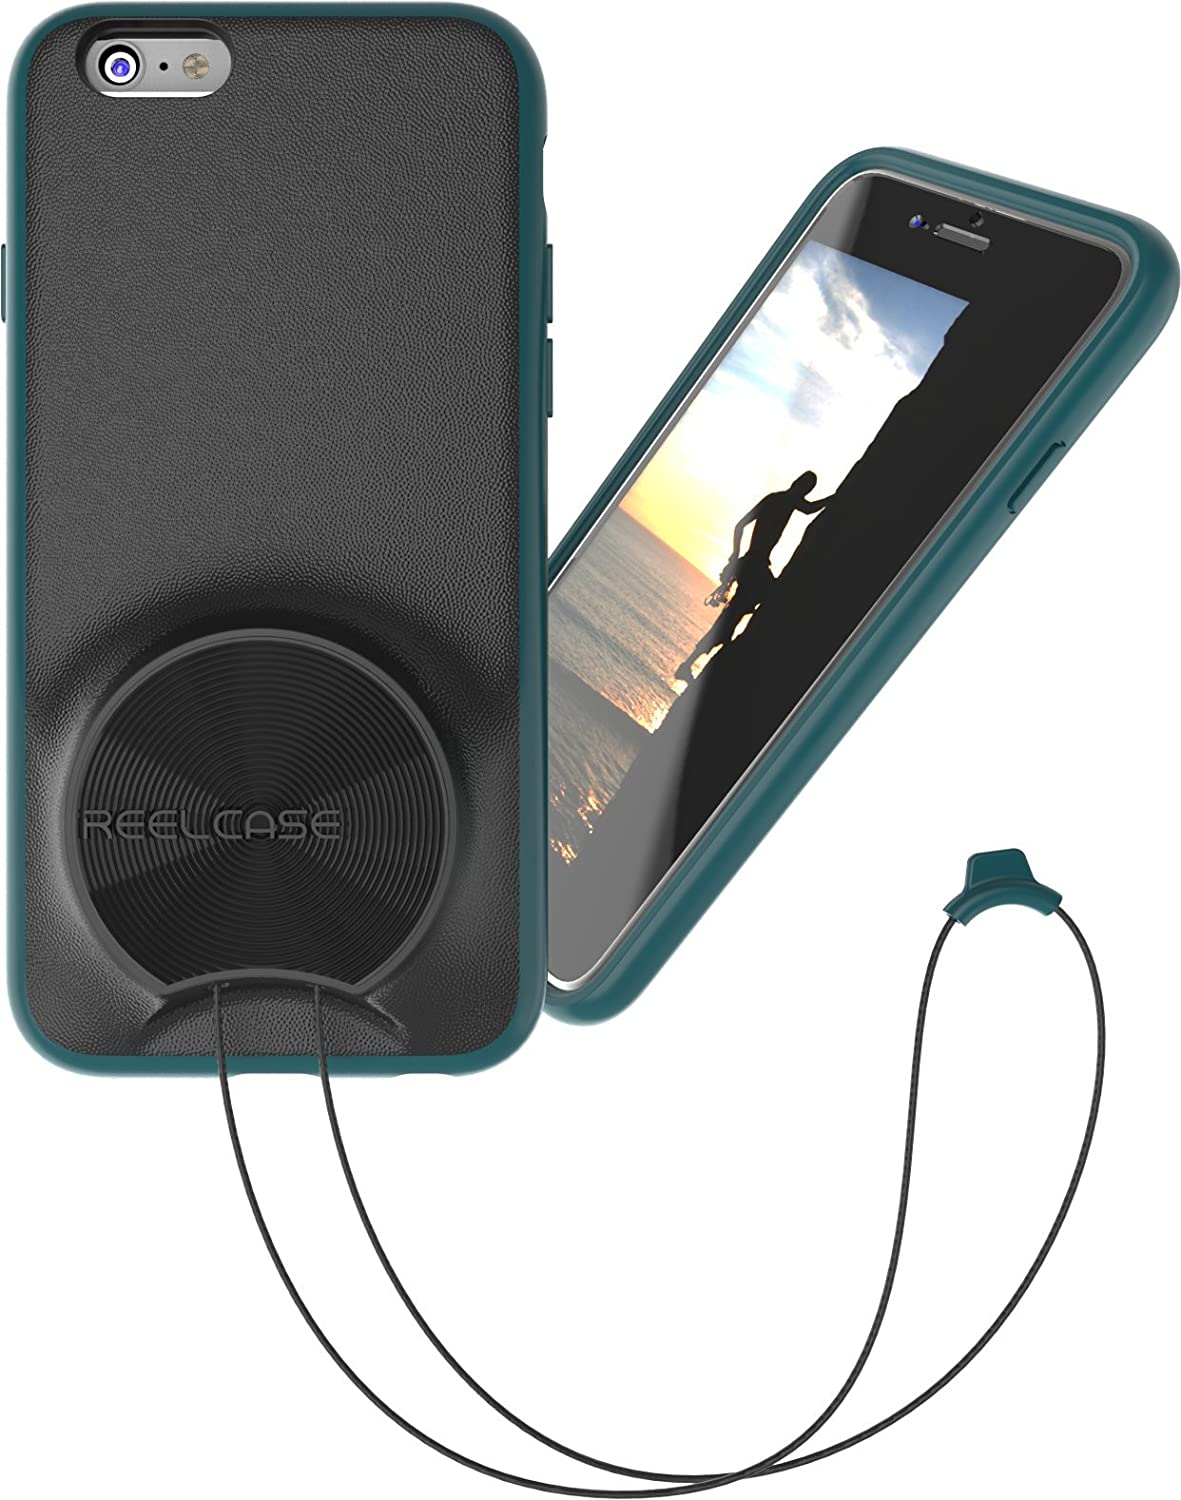 wholesale dealer b1bf5 c6dba ReelCase - iphone6 case with lanyard teal - retractable neck strap  integrated into protective case